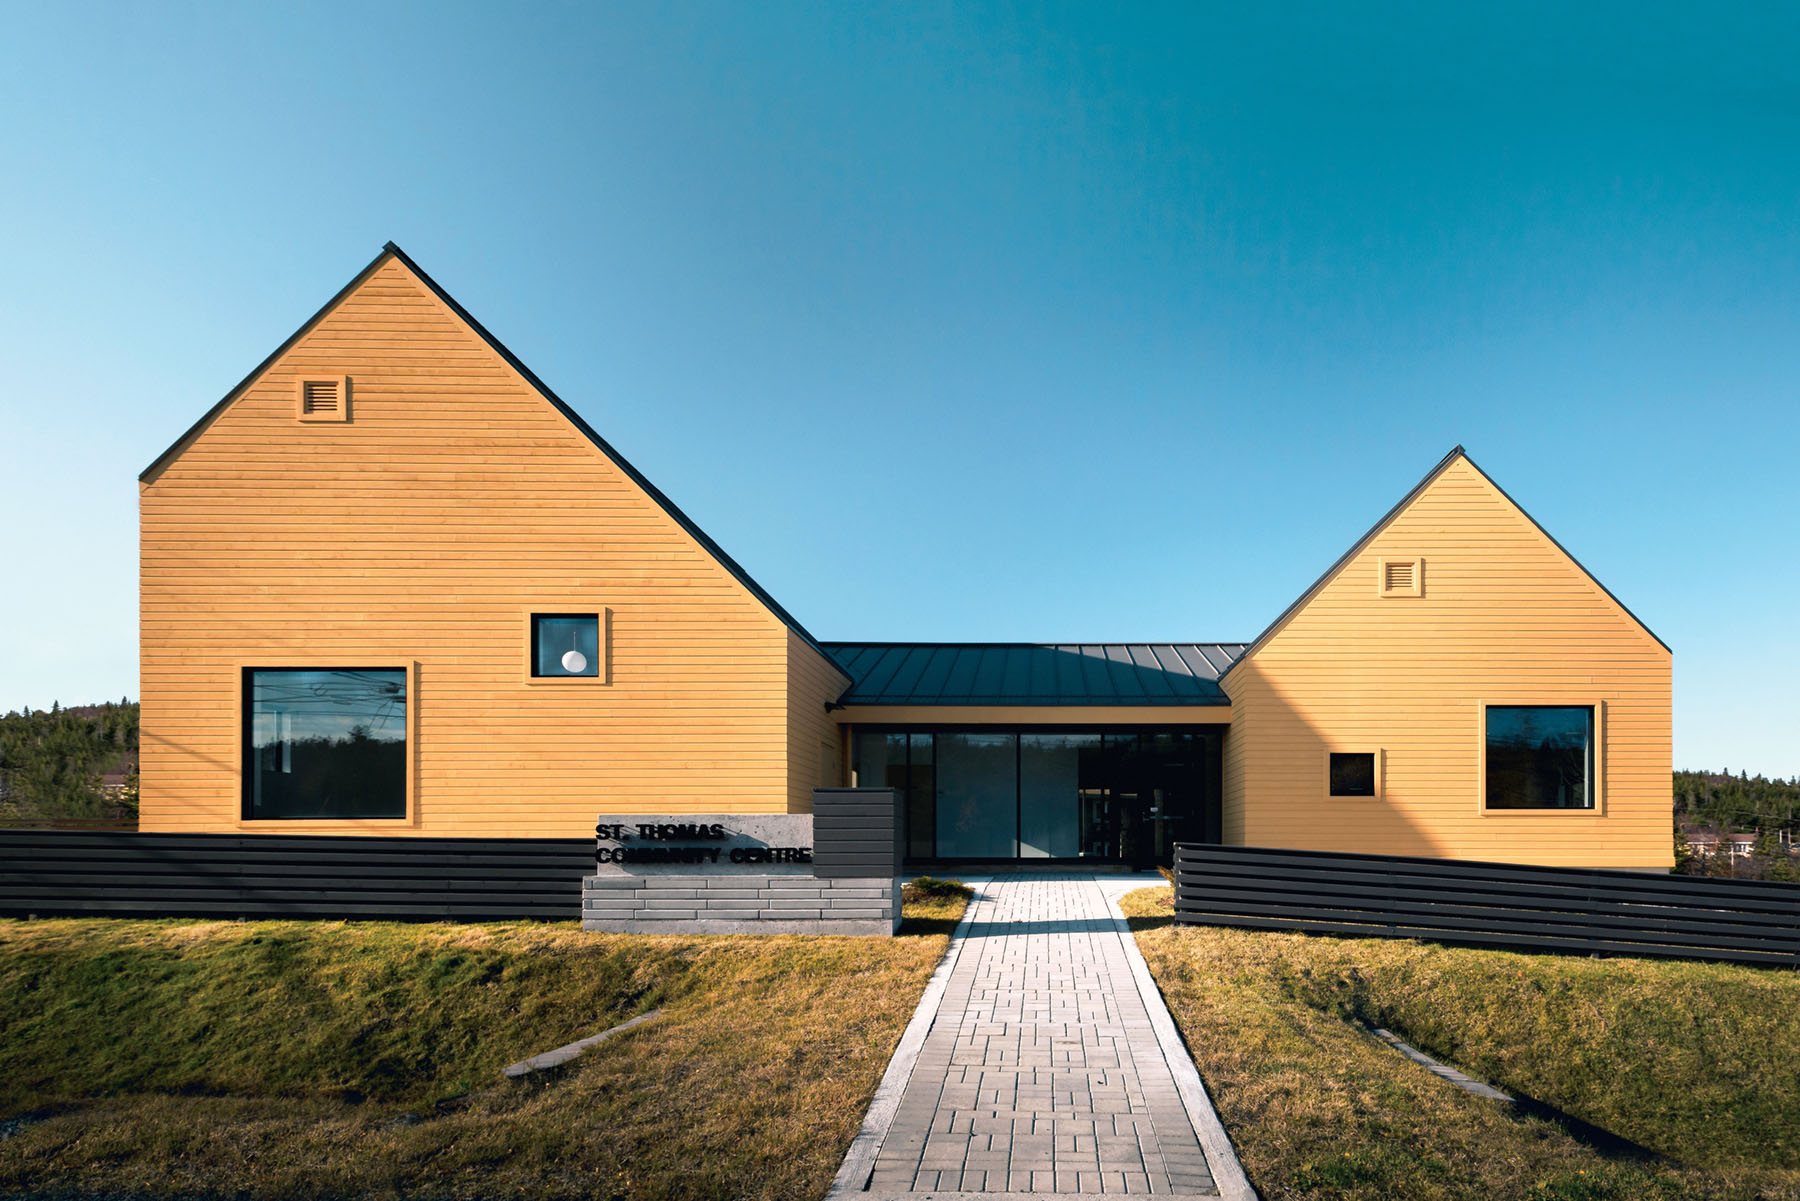 St. Thomas Community Centre in Paradise, Newfoundland was reinterpreted in a modern context